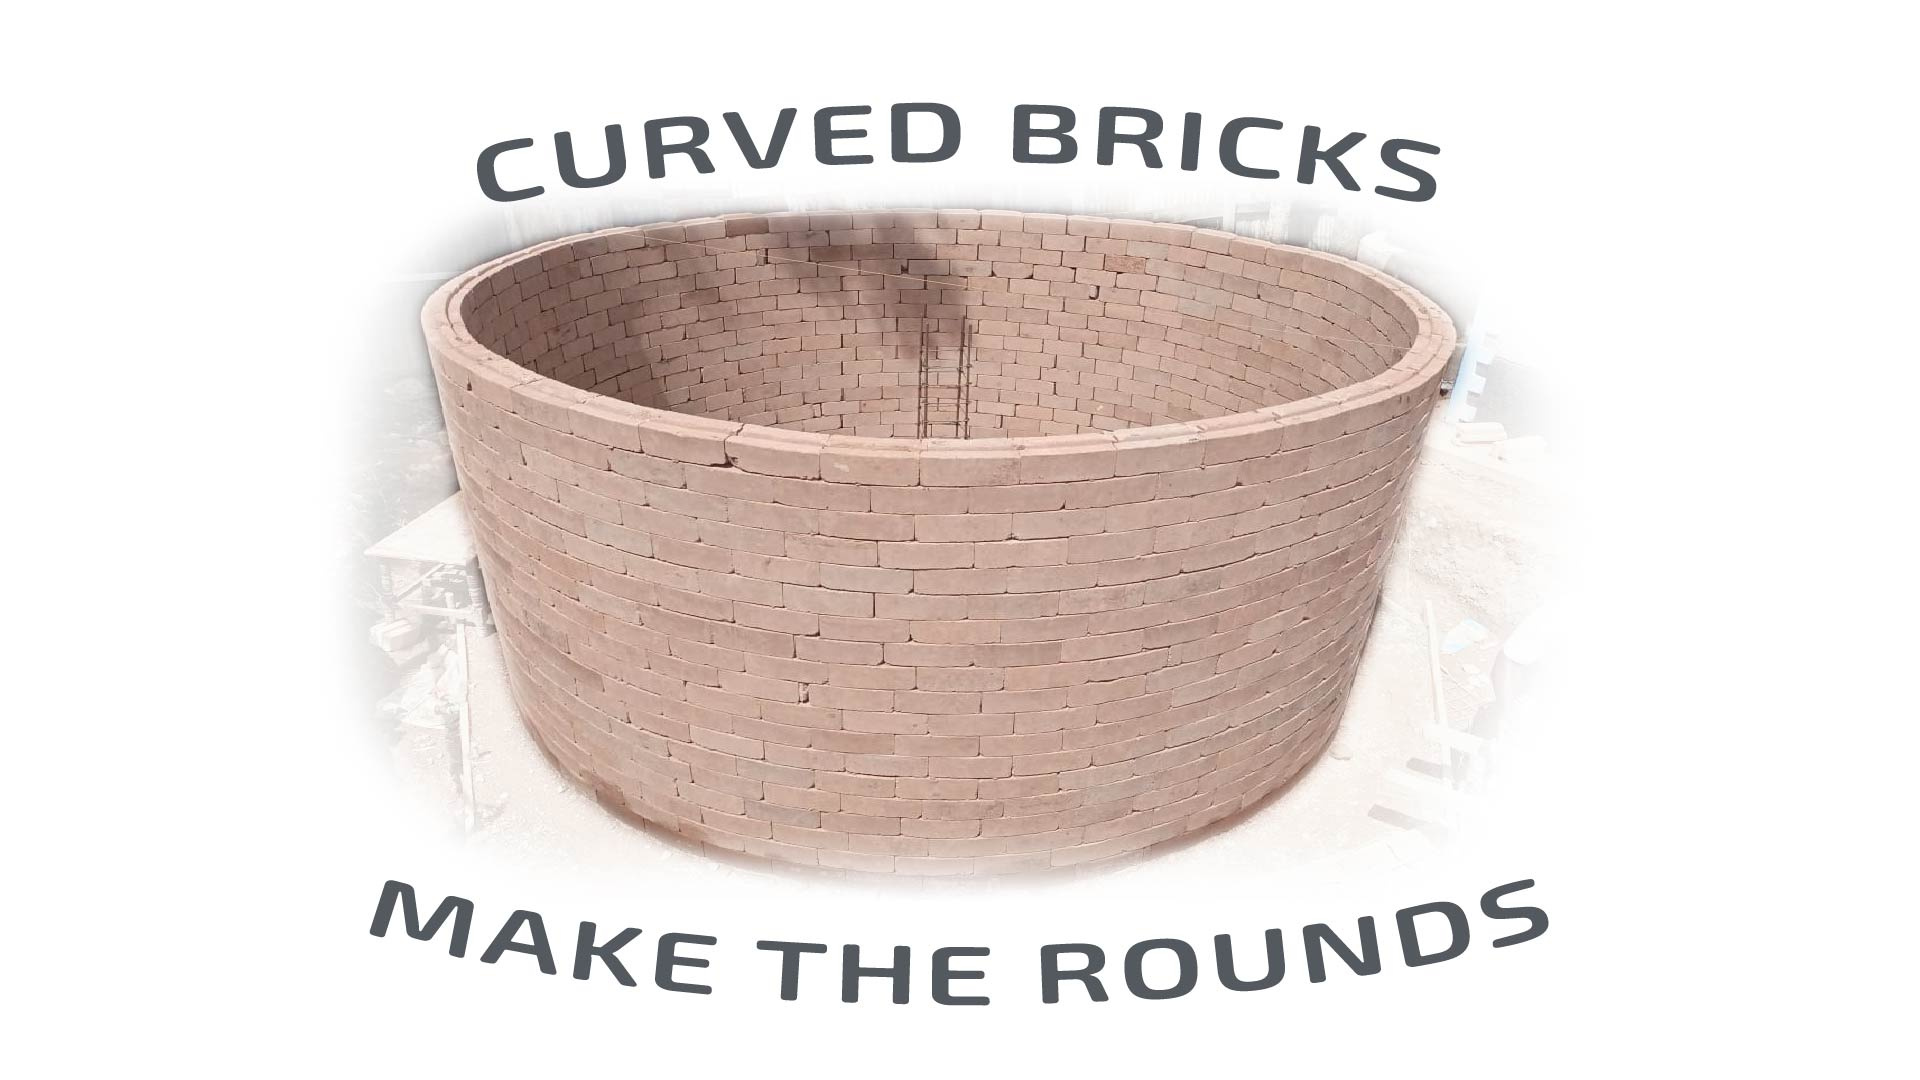 curved bricks make the rounds